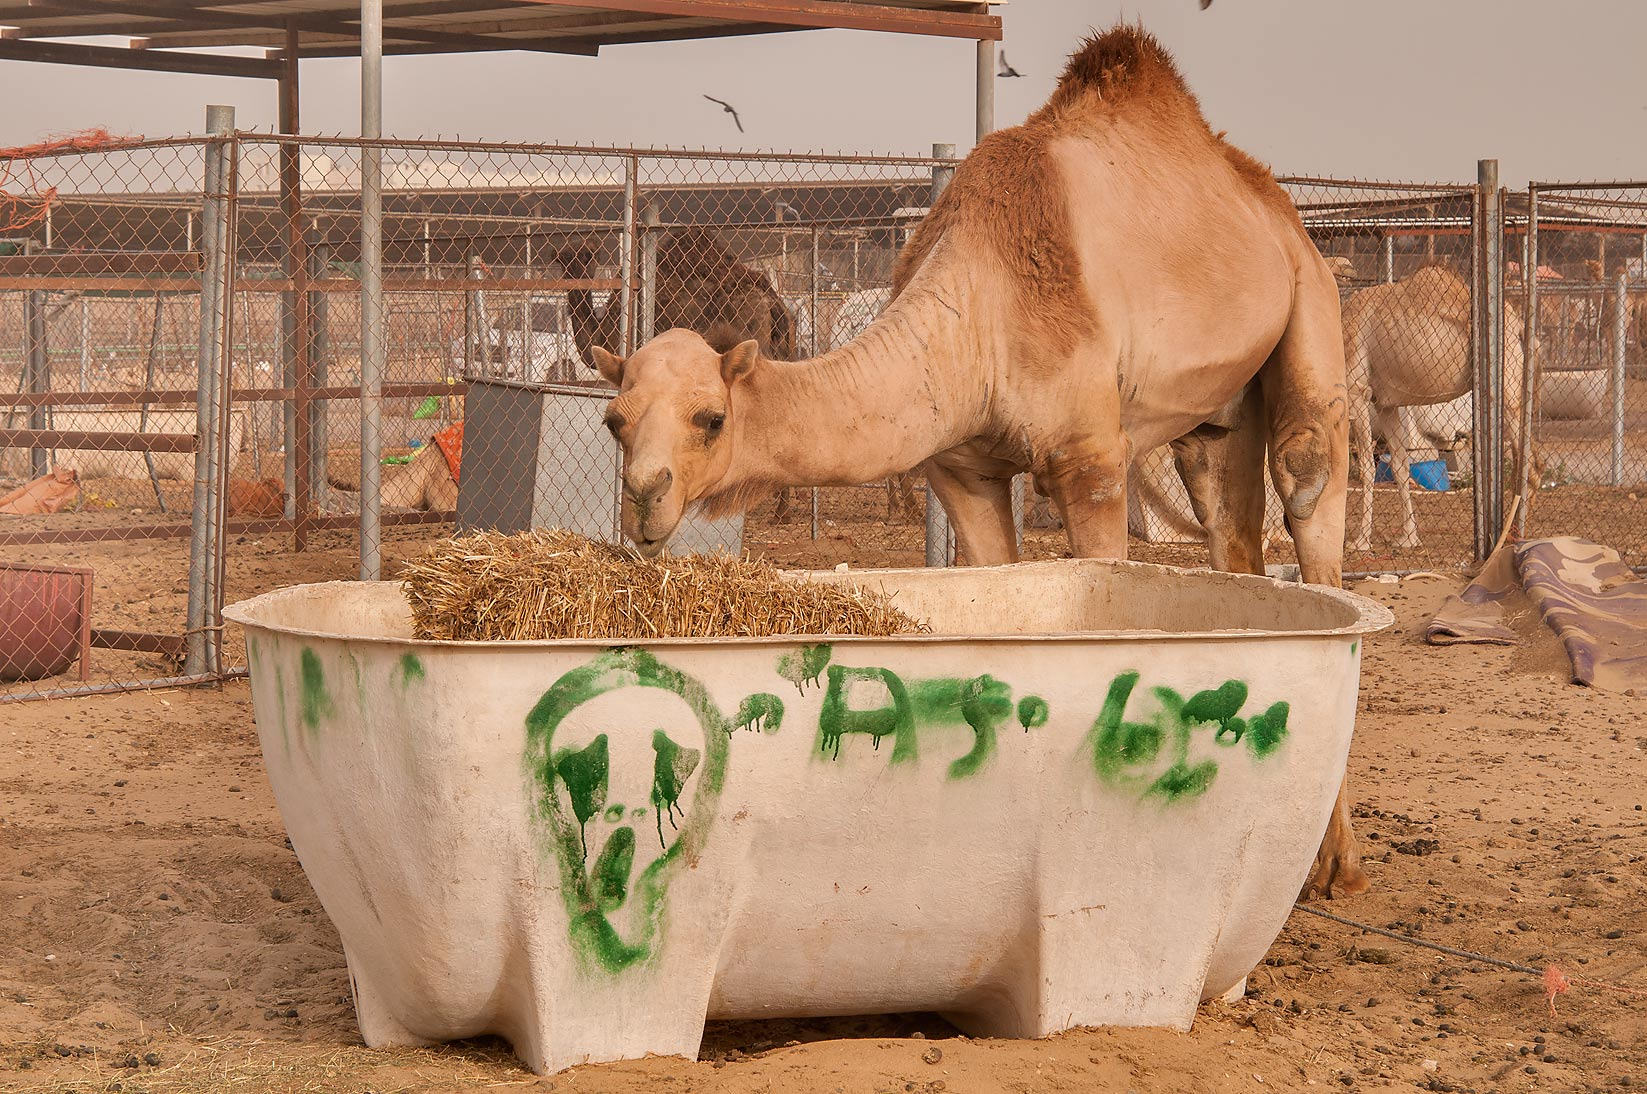 Graffiti on camel's feeder with fodder in Livestock Market, Abu Hamour area. Doha, Qatar